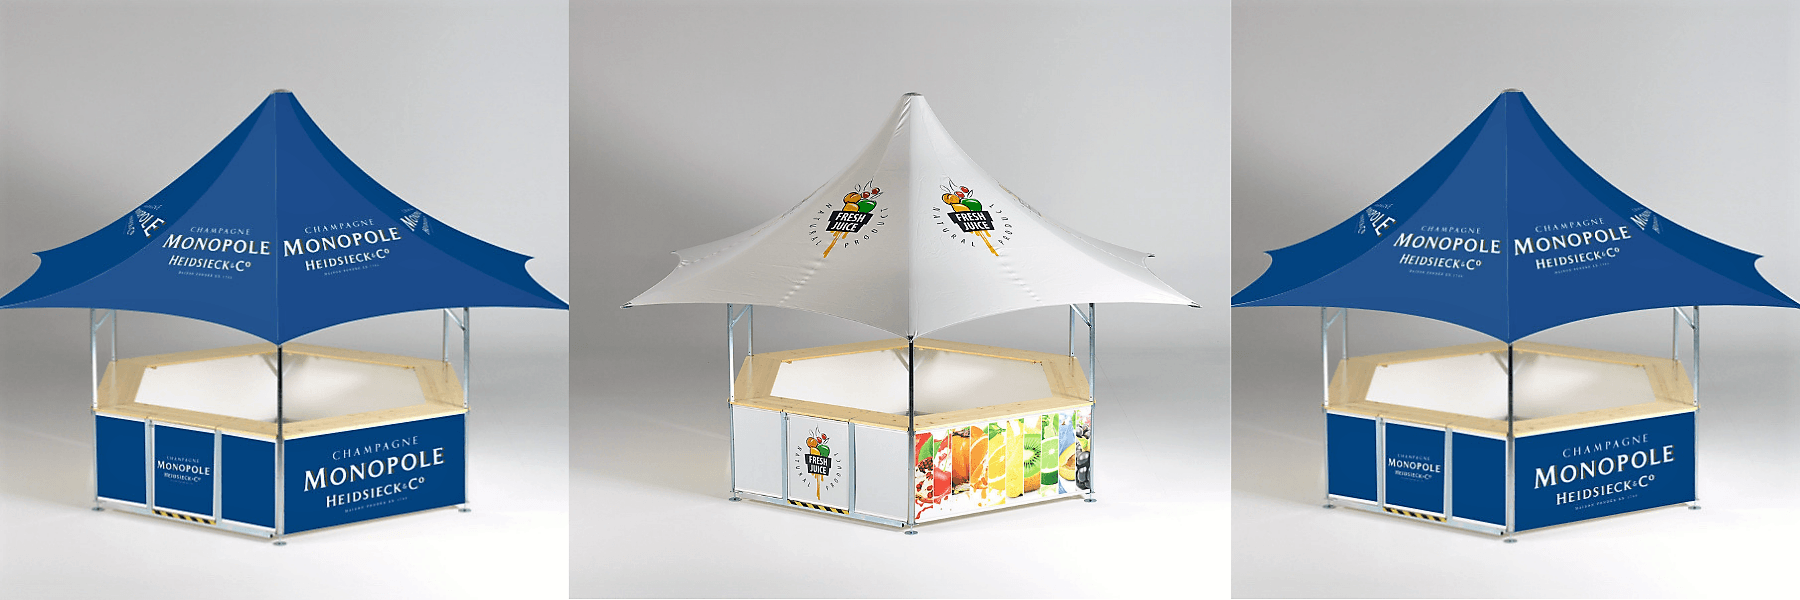 6-sided premium high-class star-shaped outdoor event bar showing 2 different designs